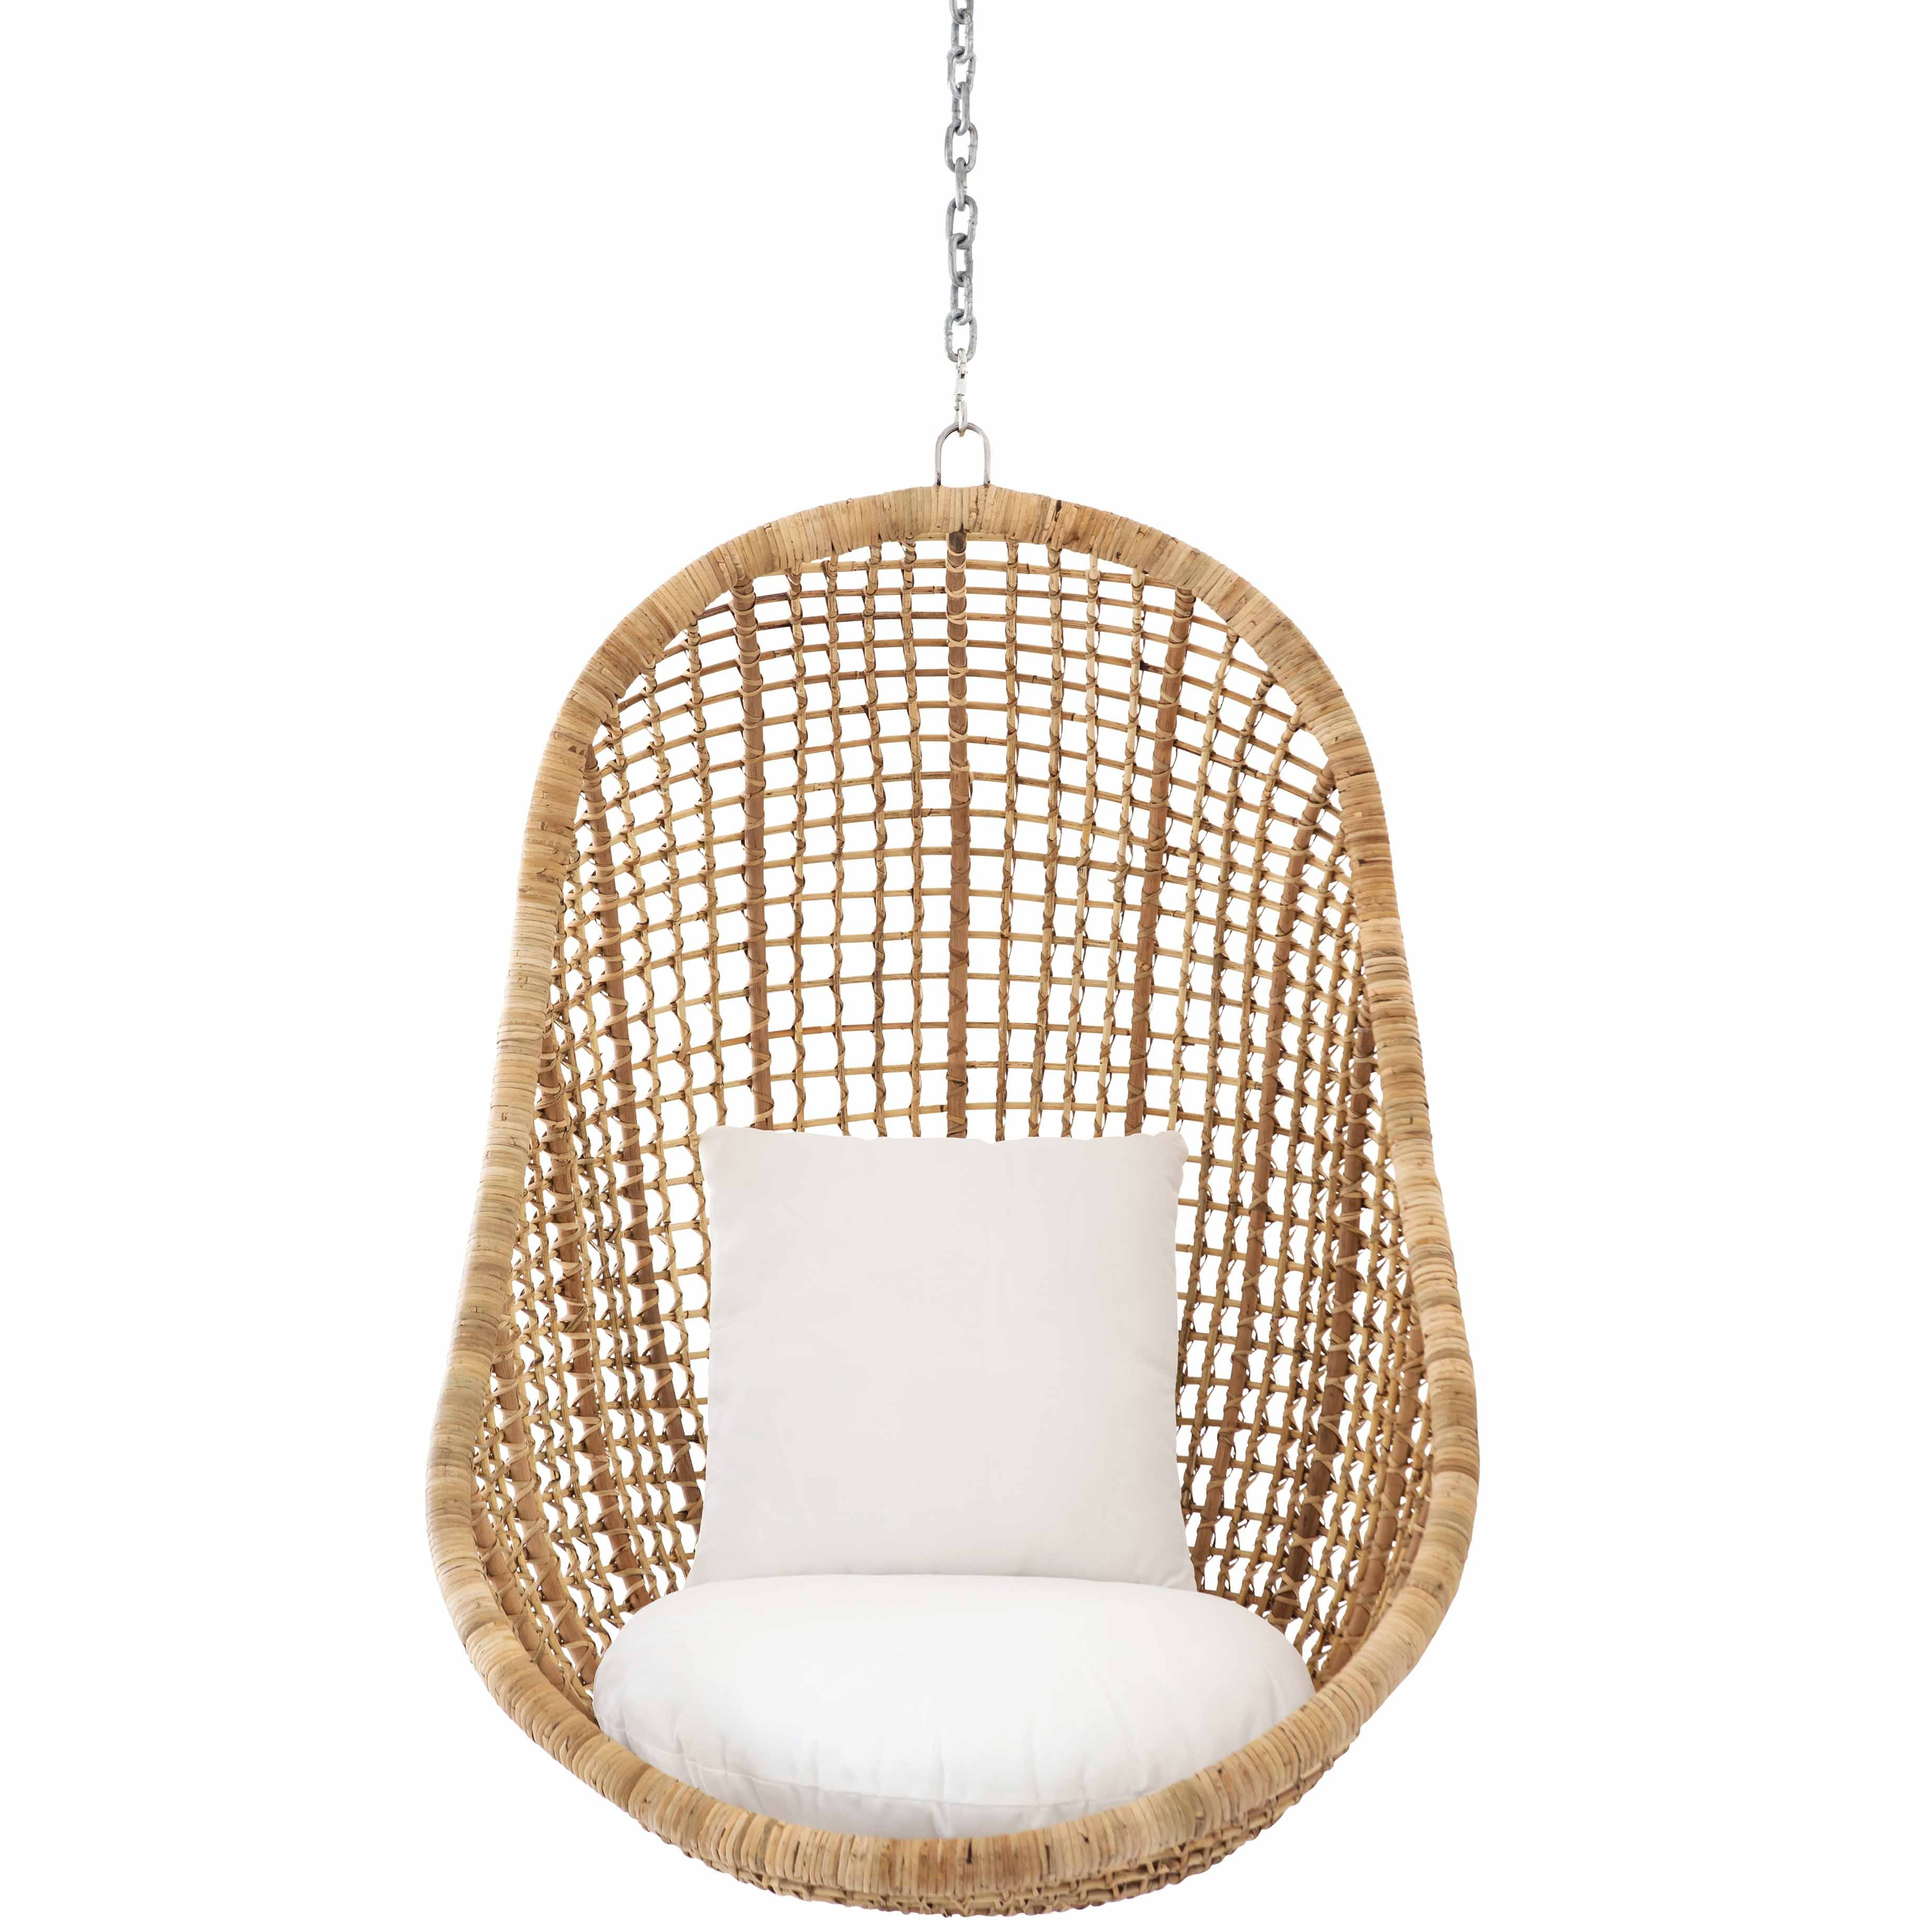 Uncategorized Pod Hanging Chair kai pod chair natural chairs pinterest this hanging is perfect for an alternative relaxed seating option rattan expertly woven into comfortable cradle